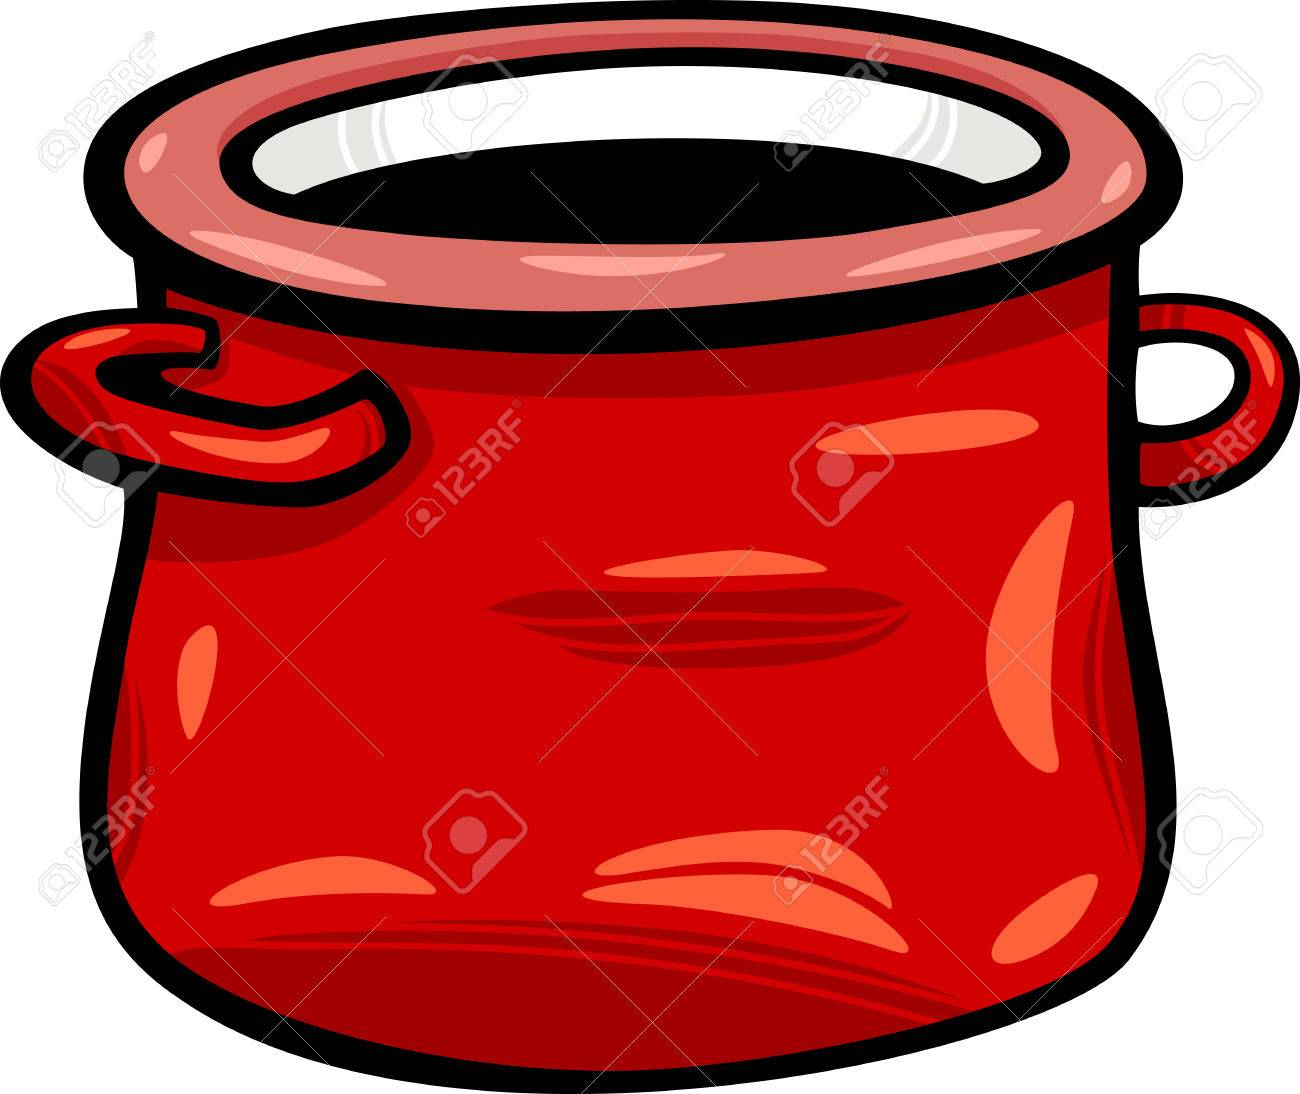 Cartoon Illustration of Red Jar or Pot Clip Art.